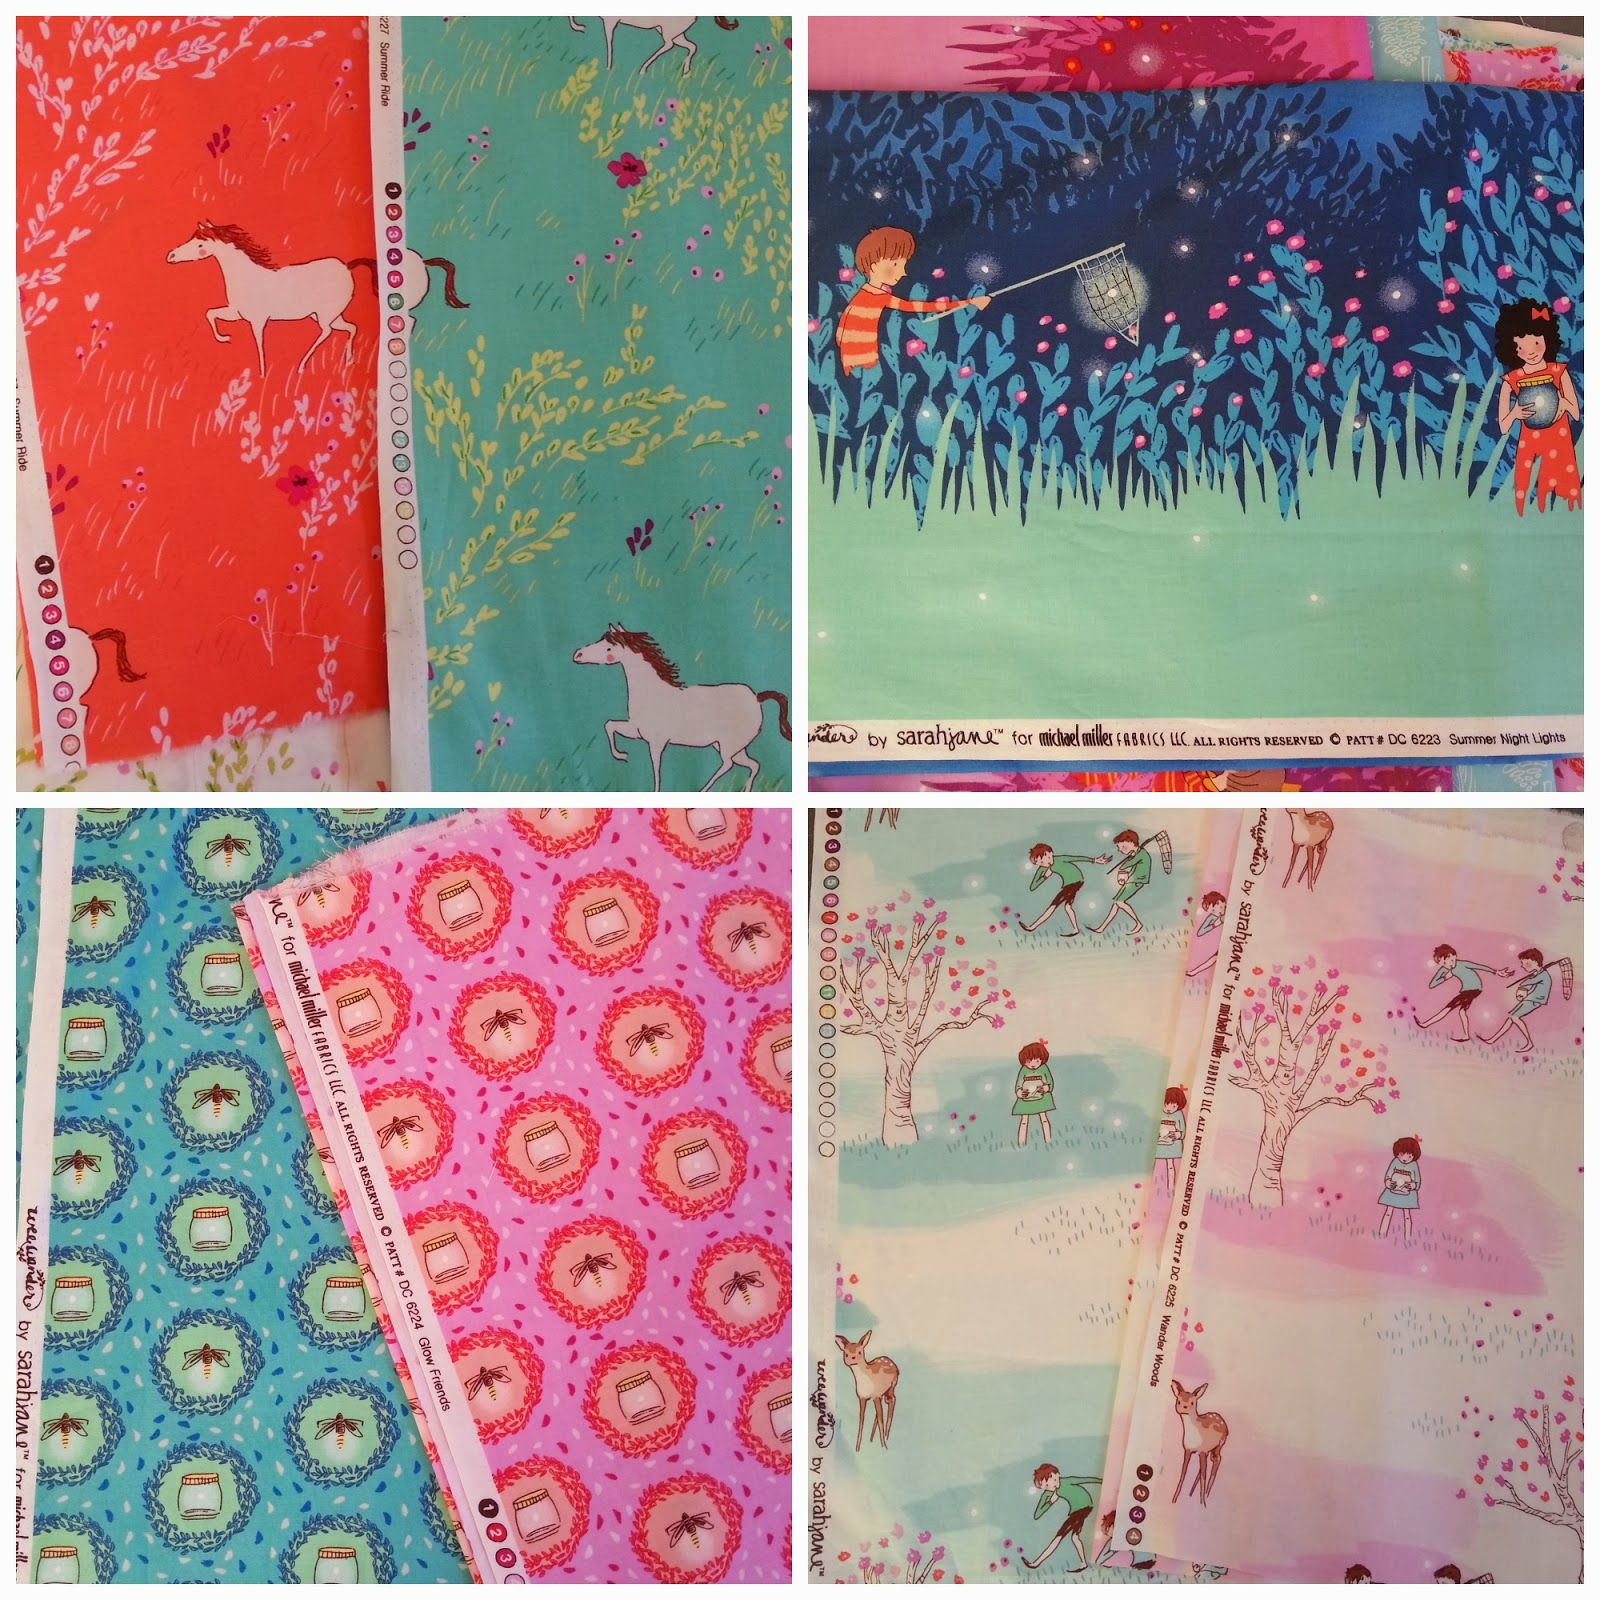 Wee Wander Fabric Collection by designer Sarah Jane Studios